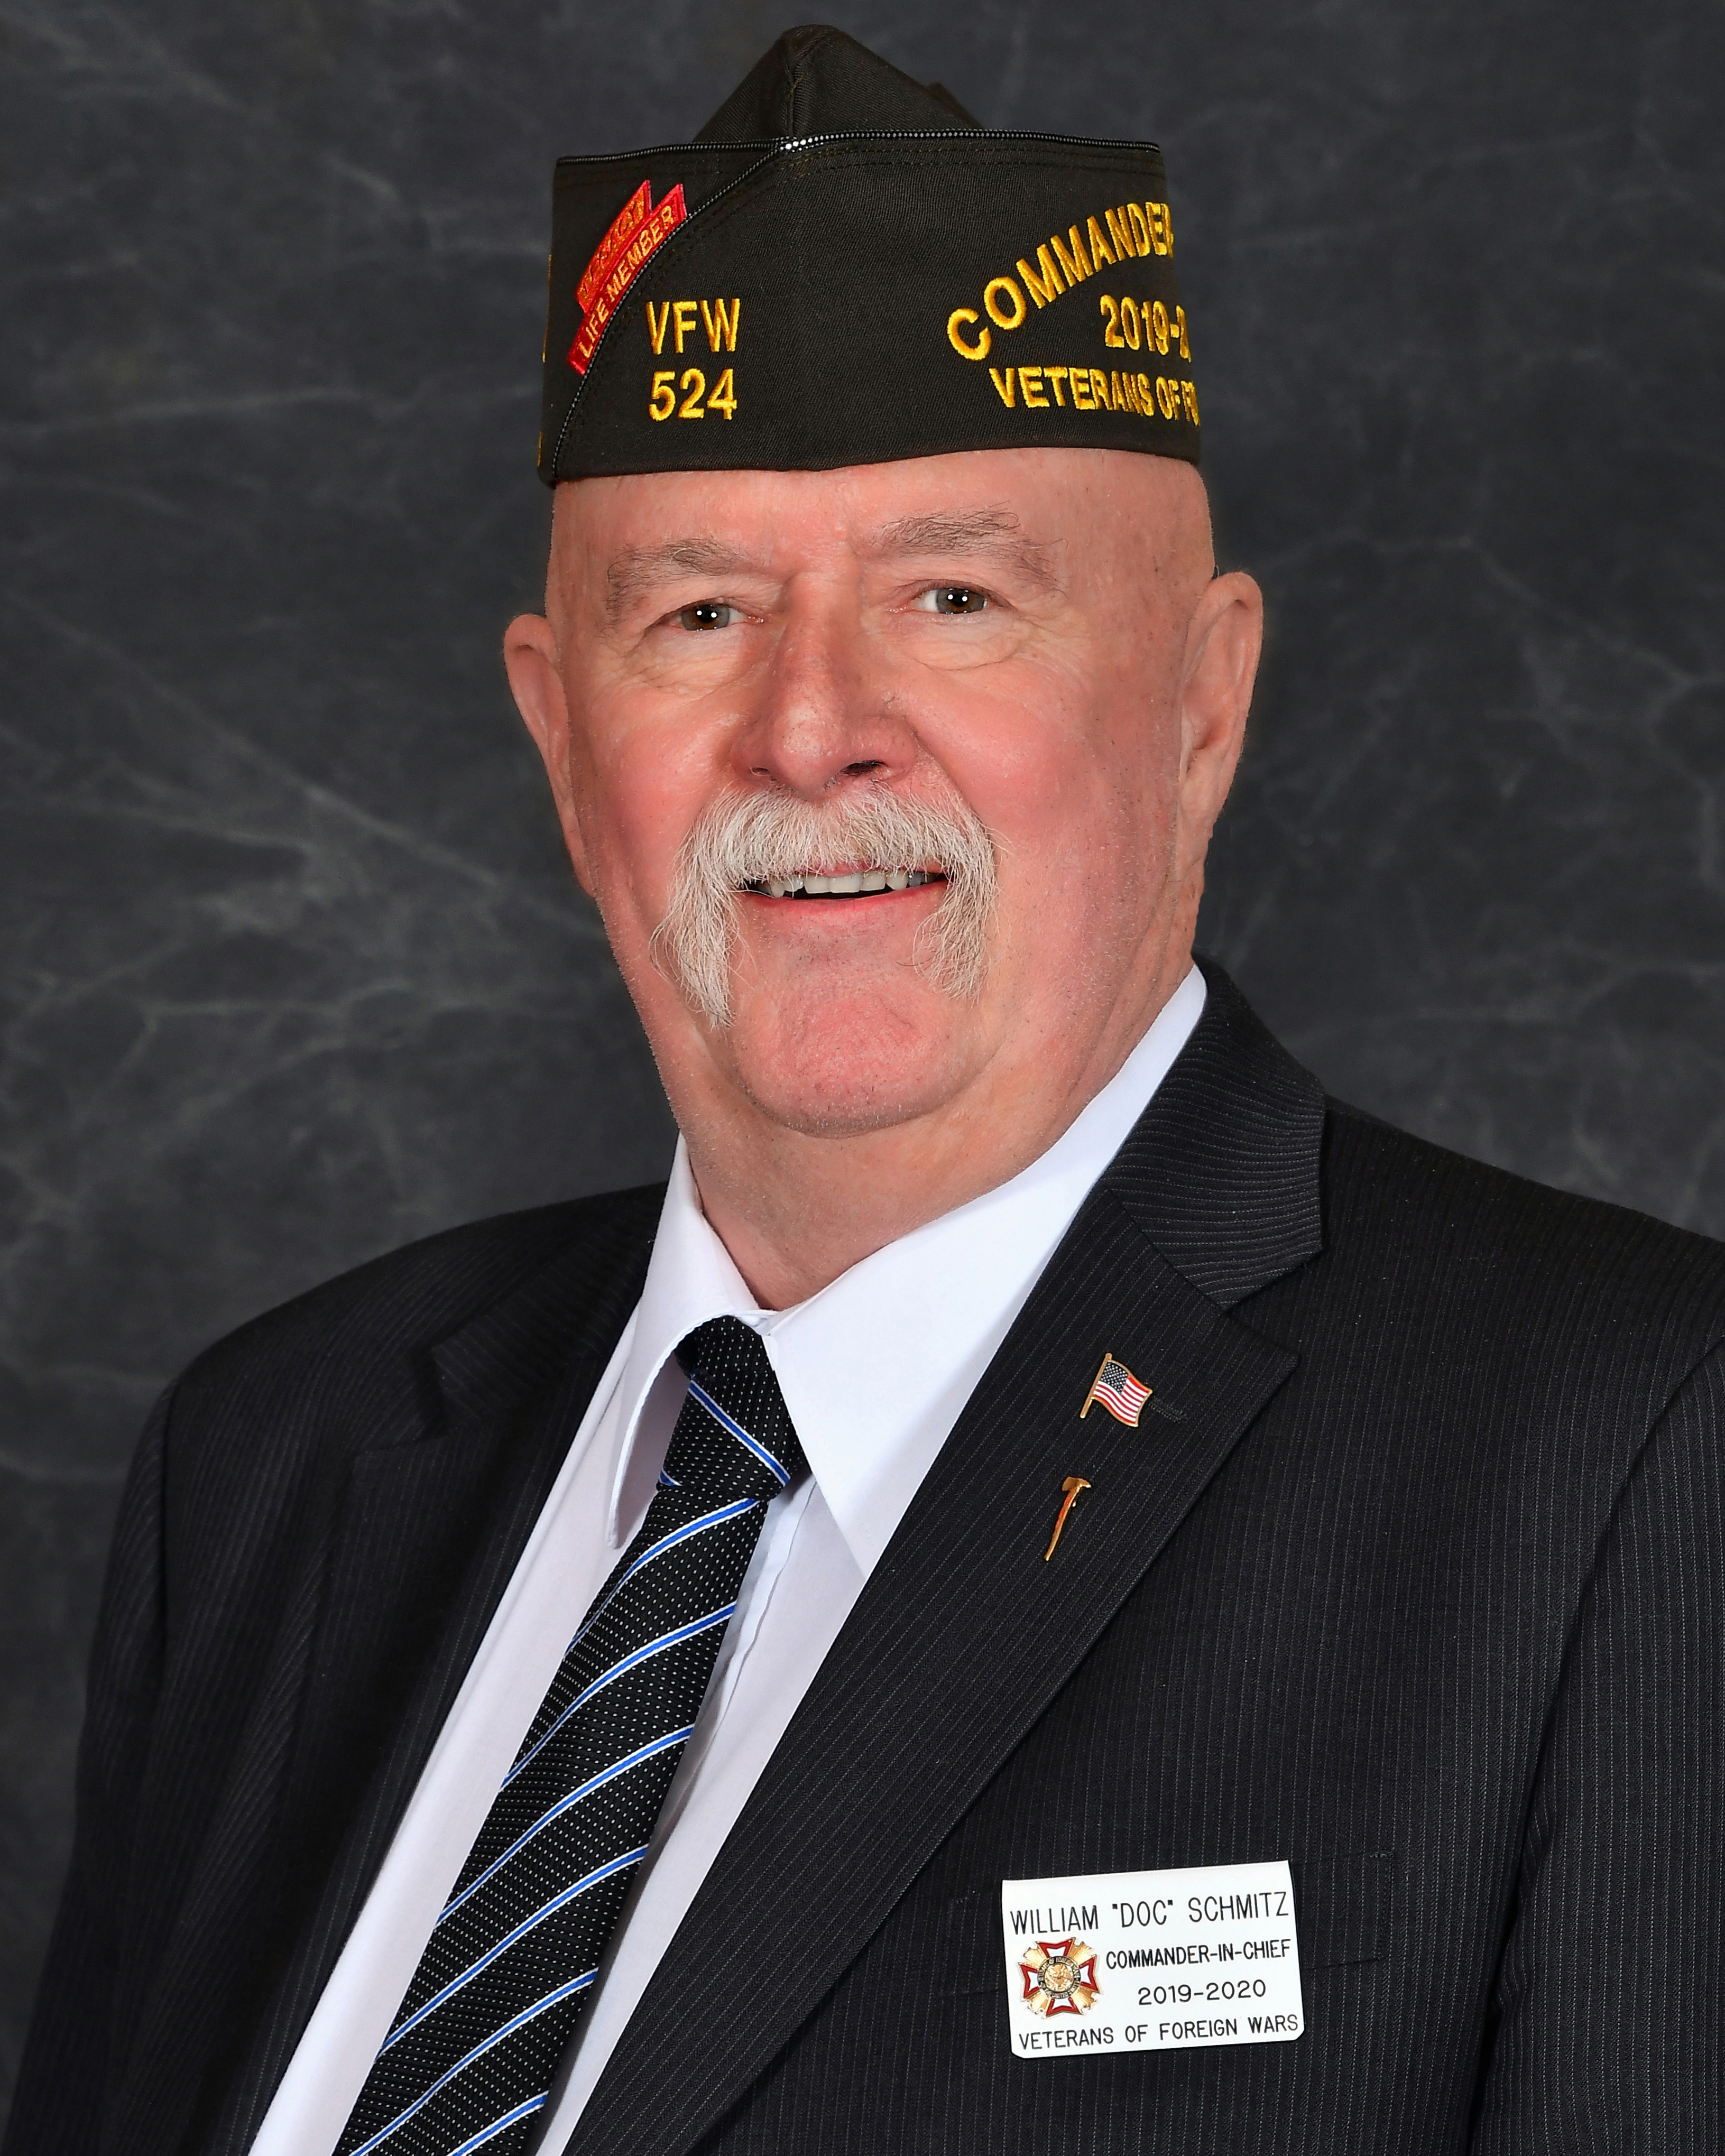 National Officers - VFW